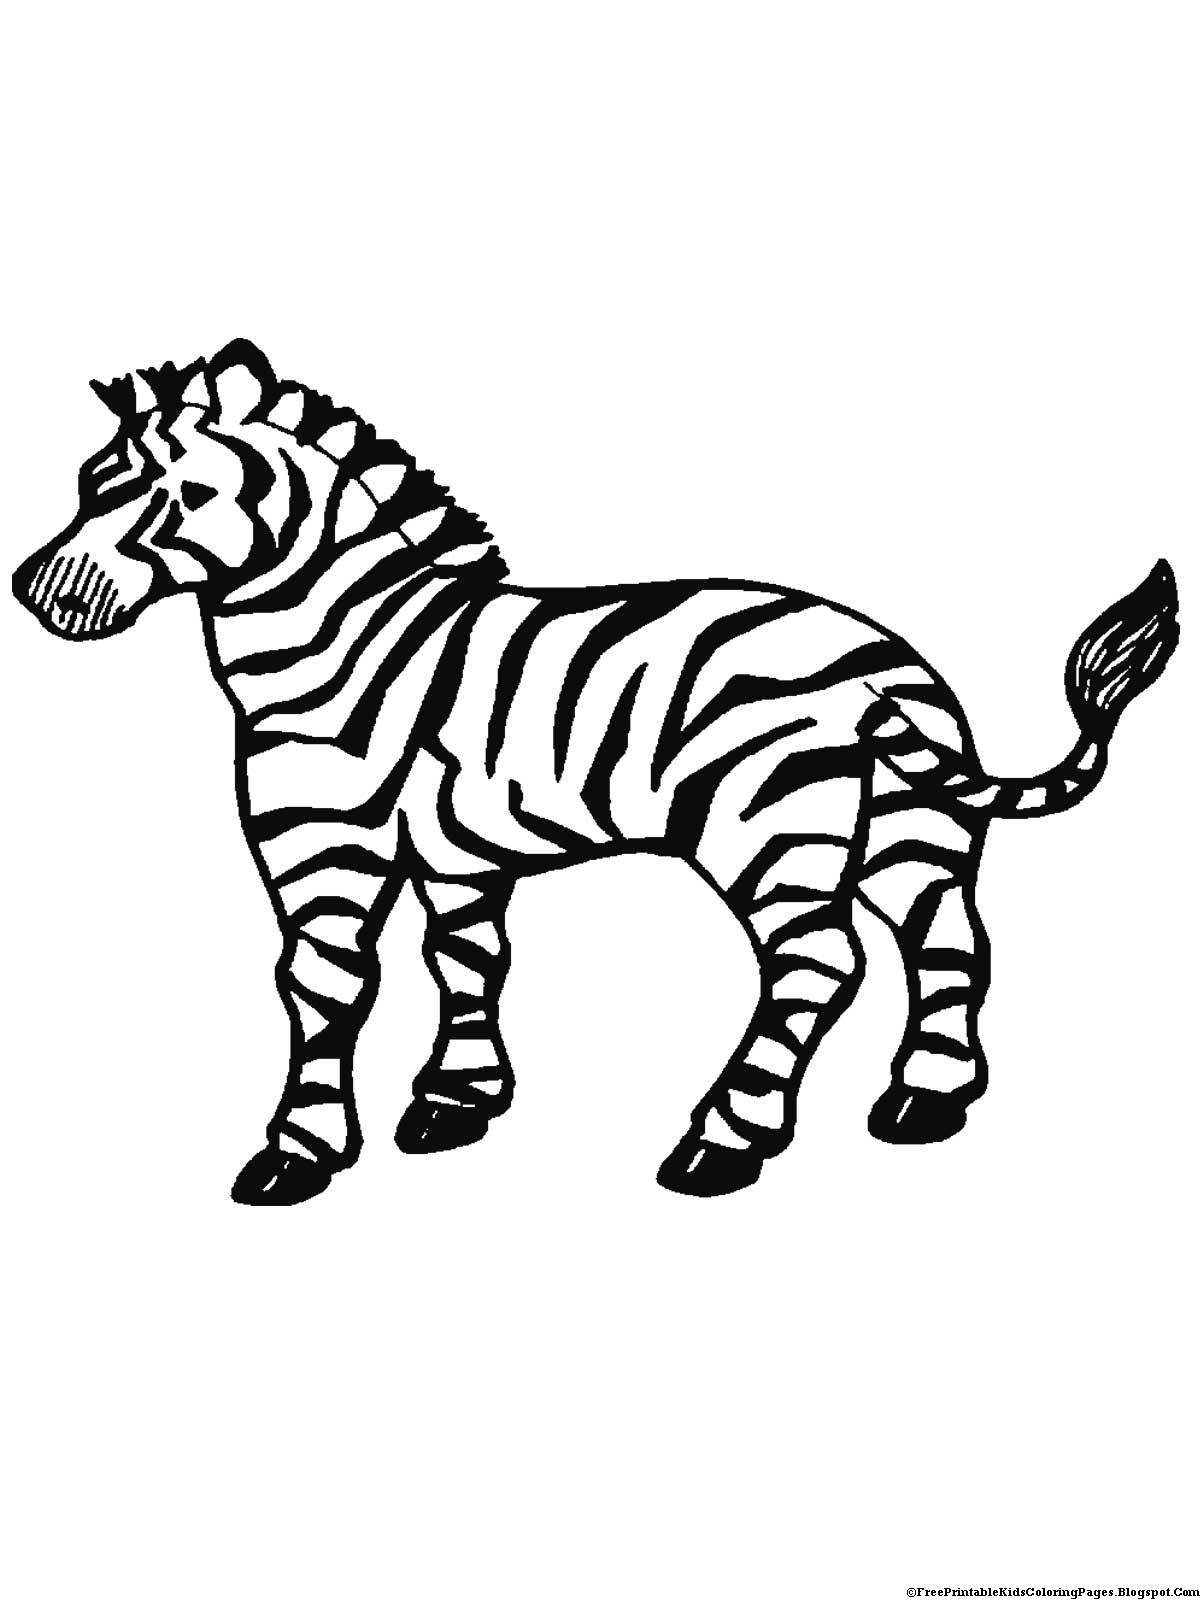 zebra coloring pages free printable zebra coloring pages free printable kids coloring pages coloring printable free zebra pages